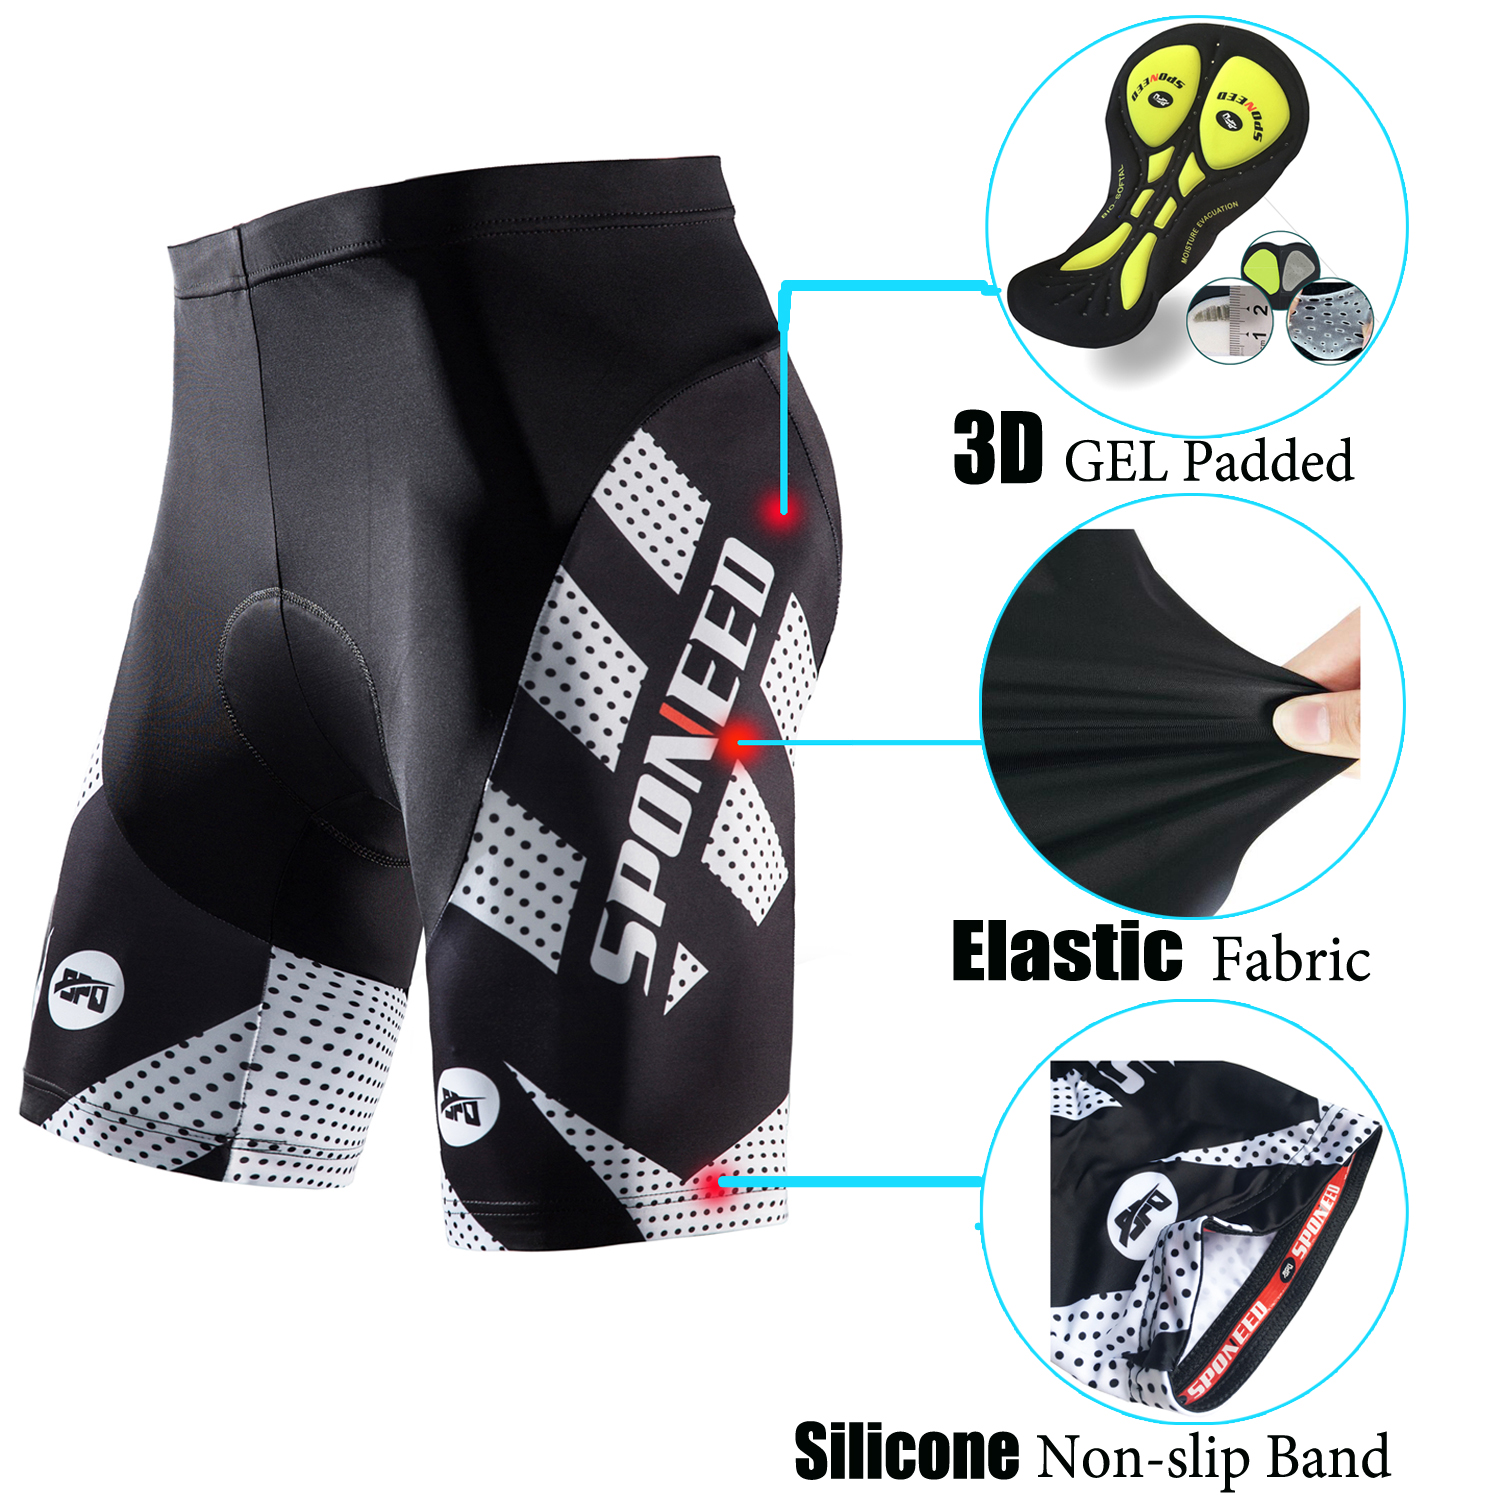 Details about Cycling Shorts Padded Men Spin Bicycle Pants Half Sleeve  Stretchable Bike Tights 2f8300f47